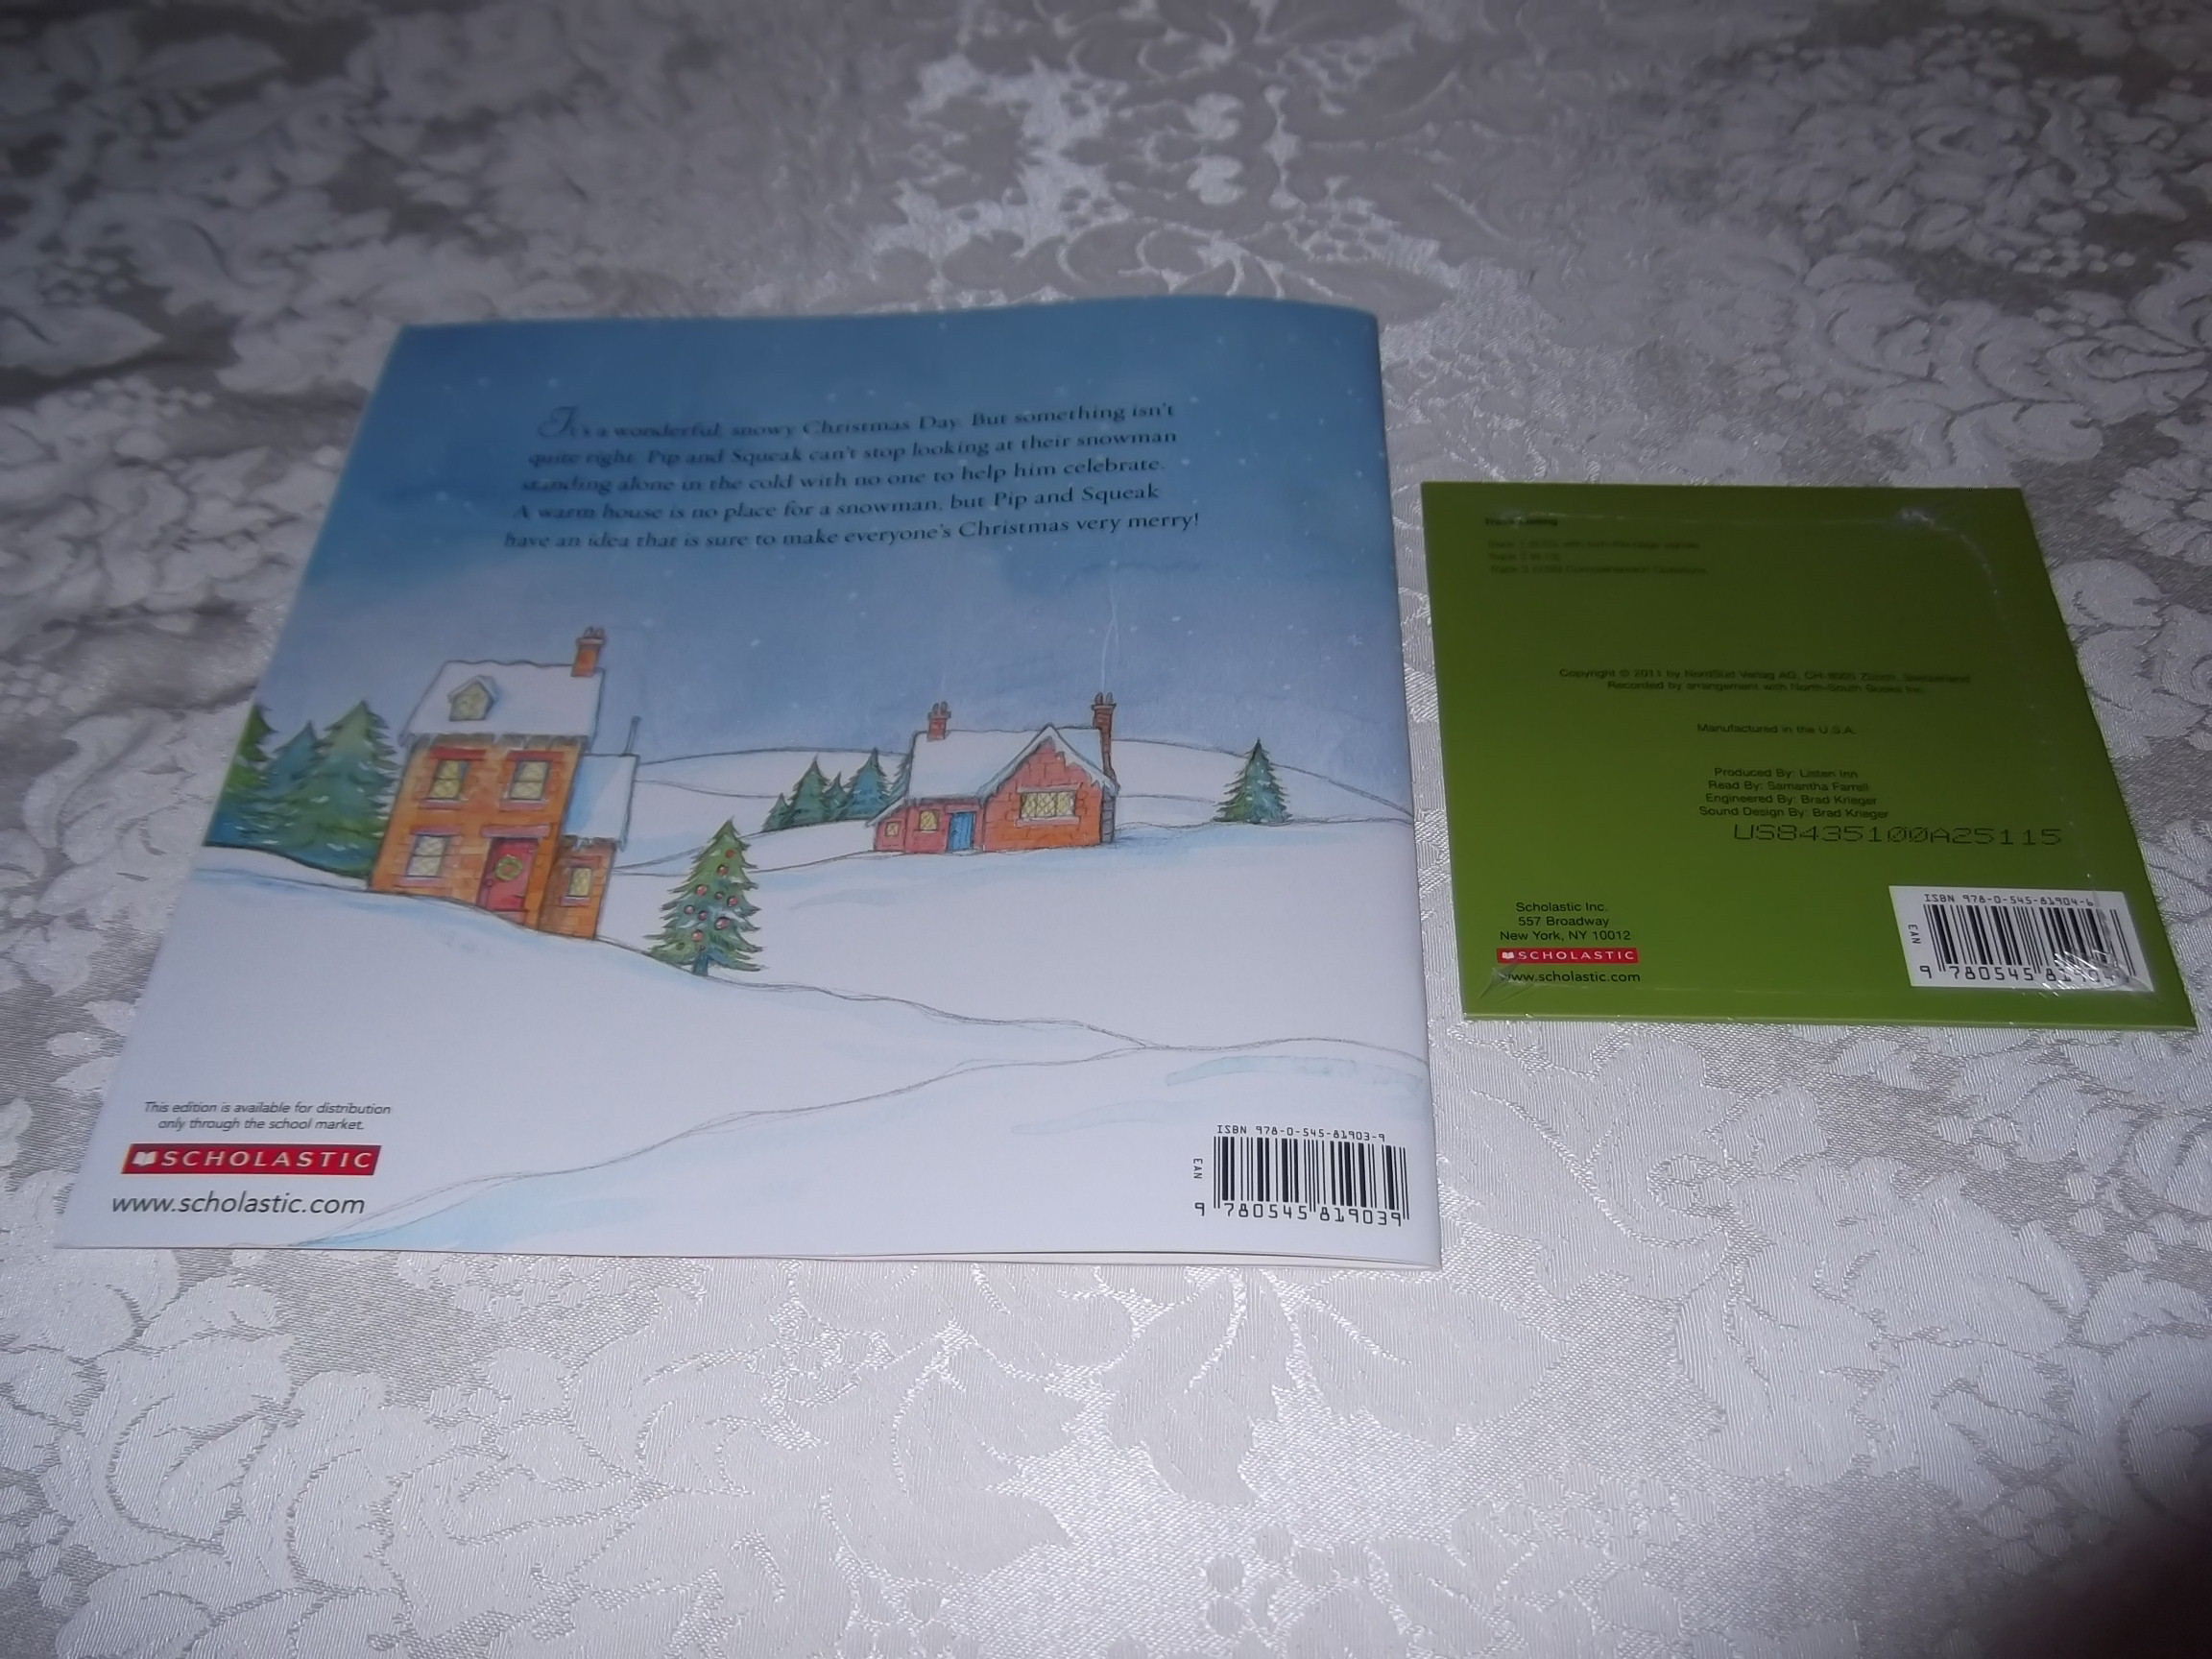 Image 7 of Merry Christmas, Mr. Snowman! Wolfram Hanel Audio CD and SC Brand New